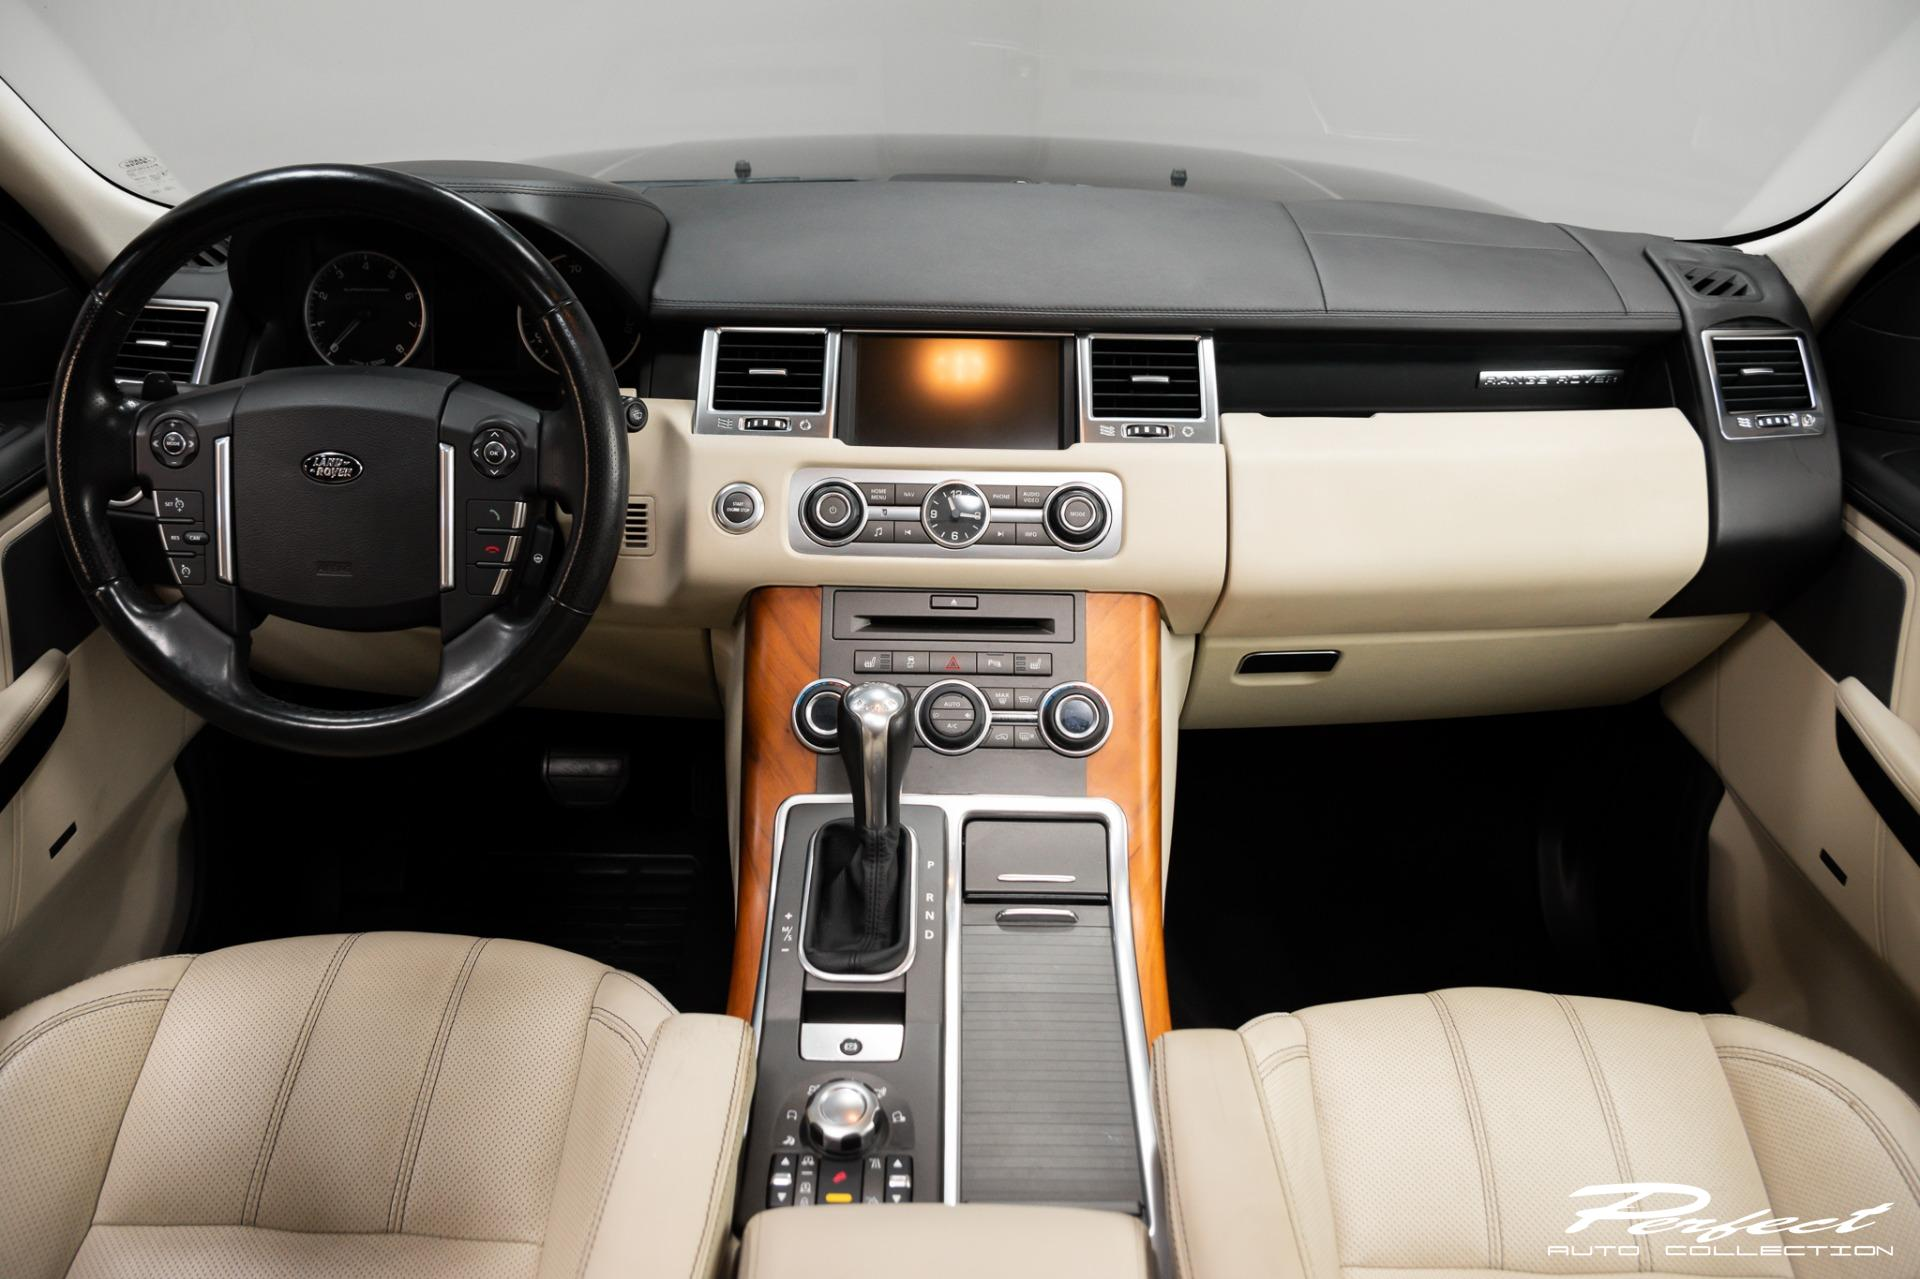 Used 2011 Land Rover Range Rover Sport Supercharged